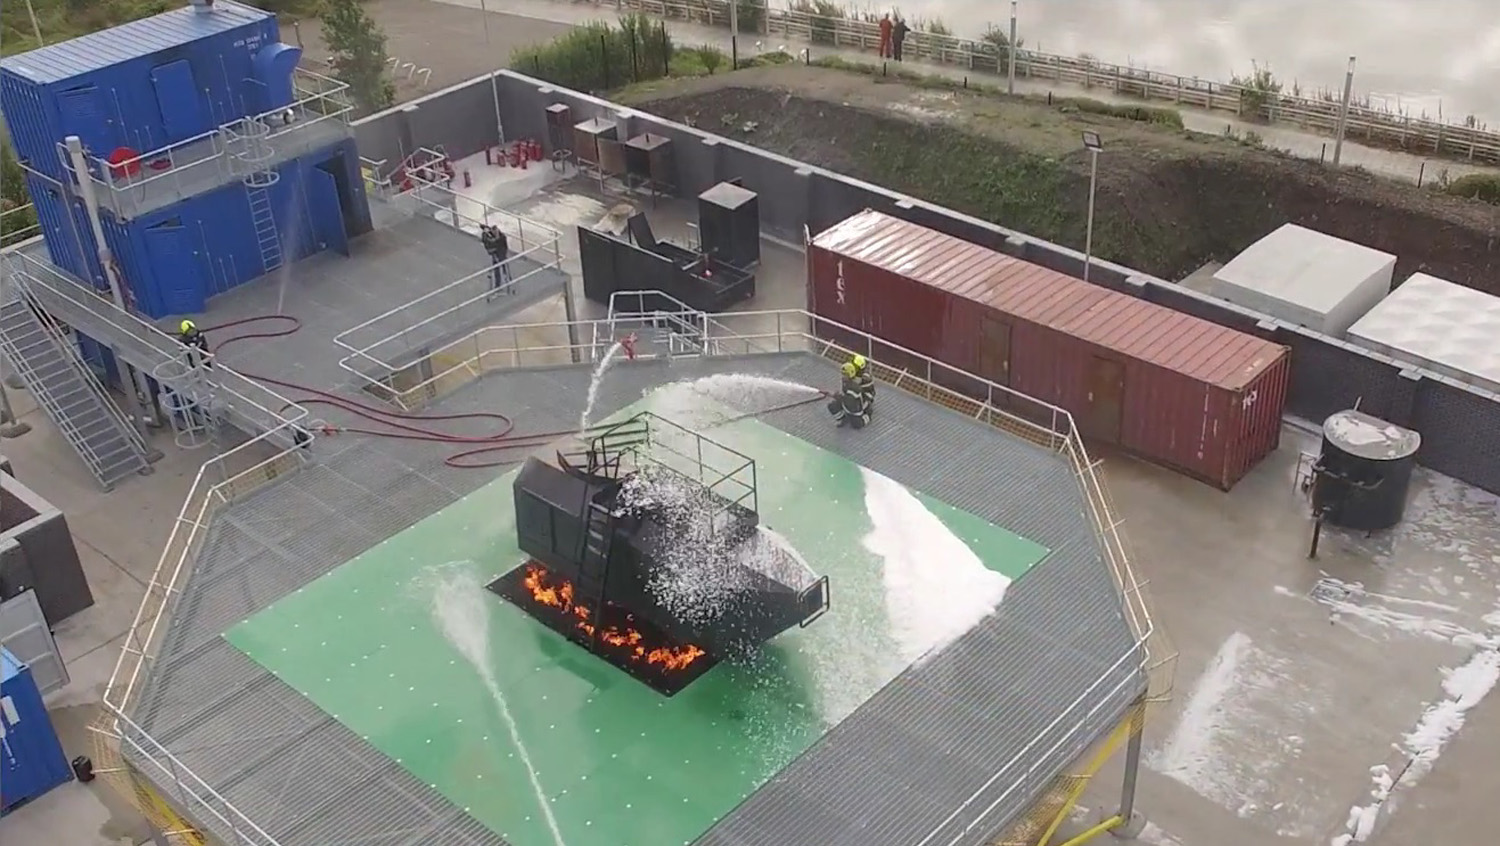 Complete fire training stacks